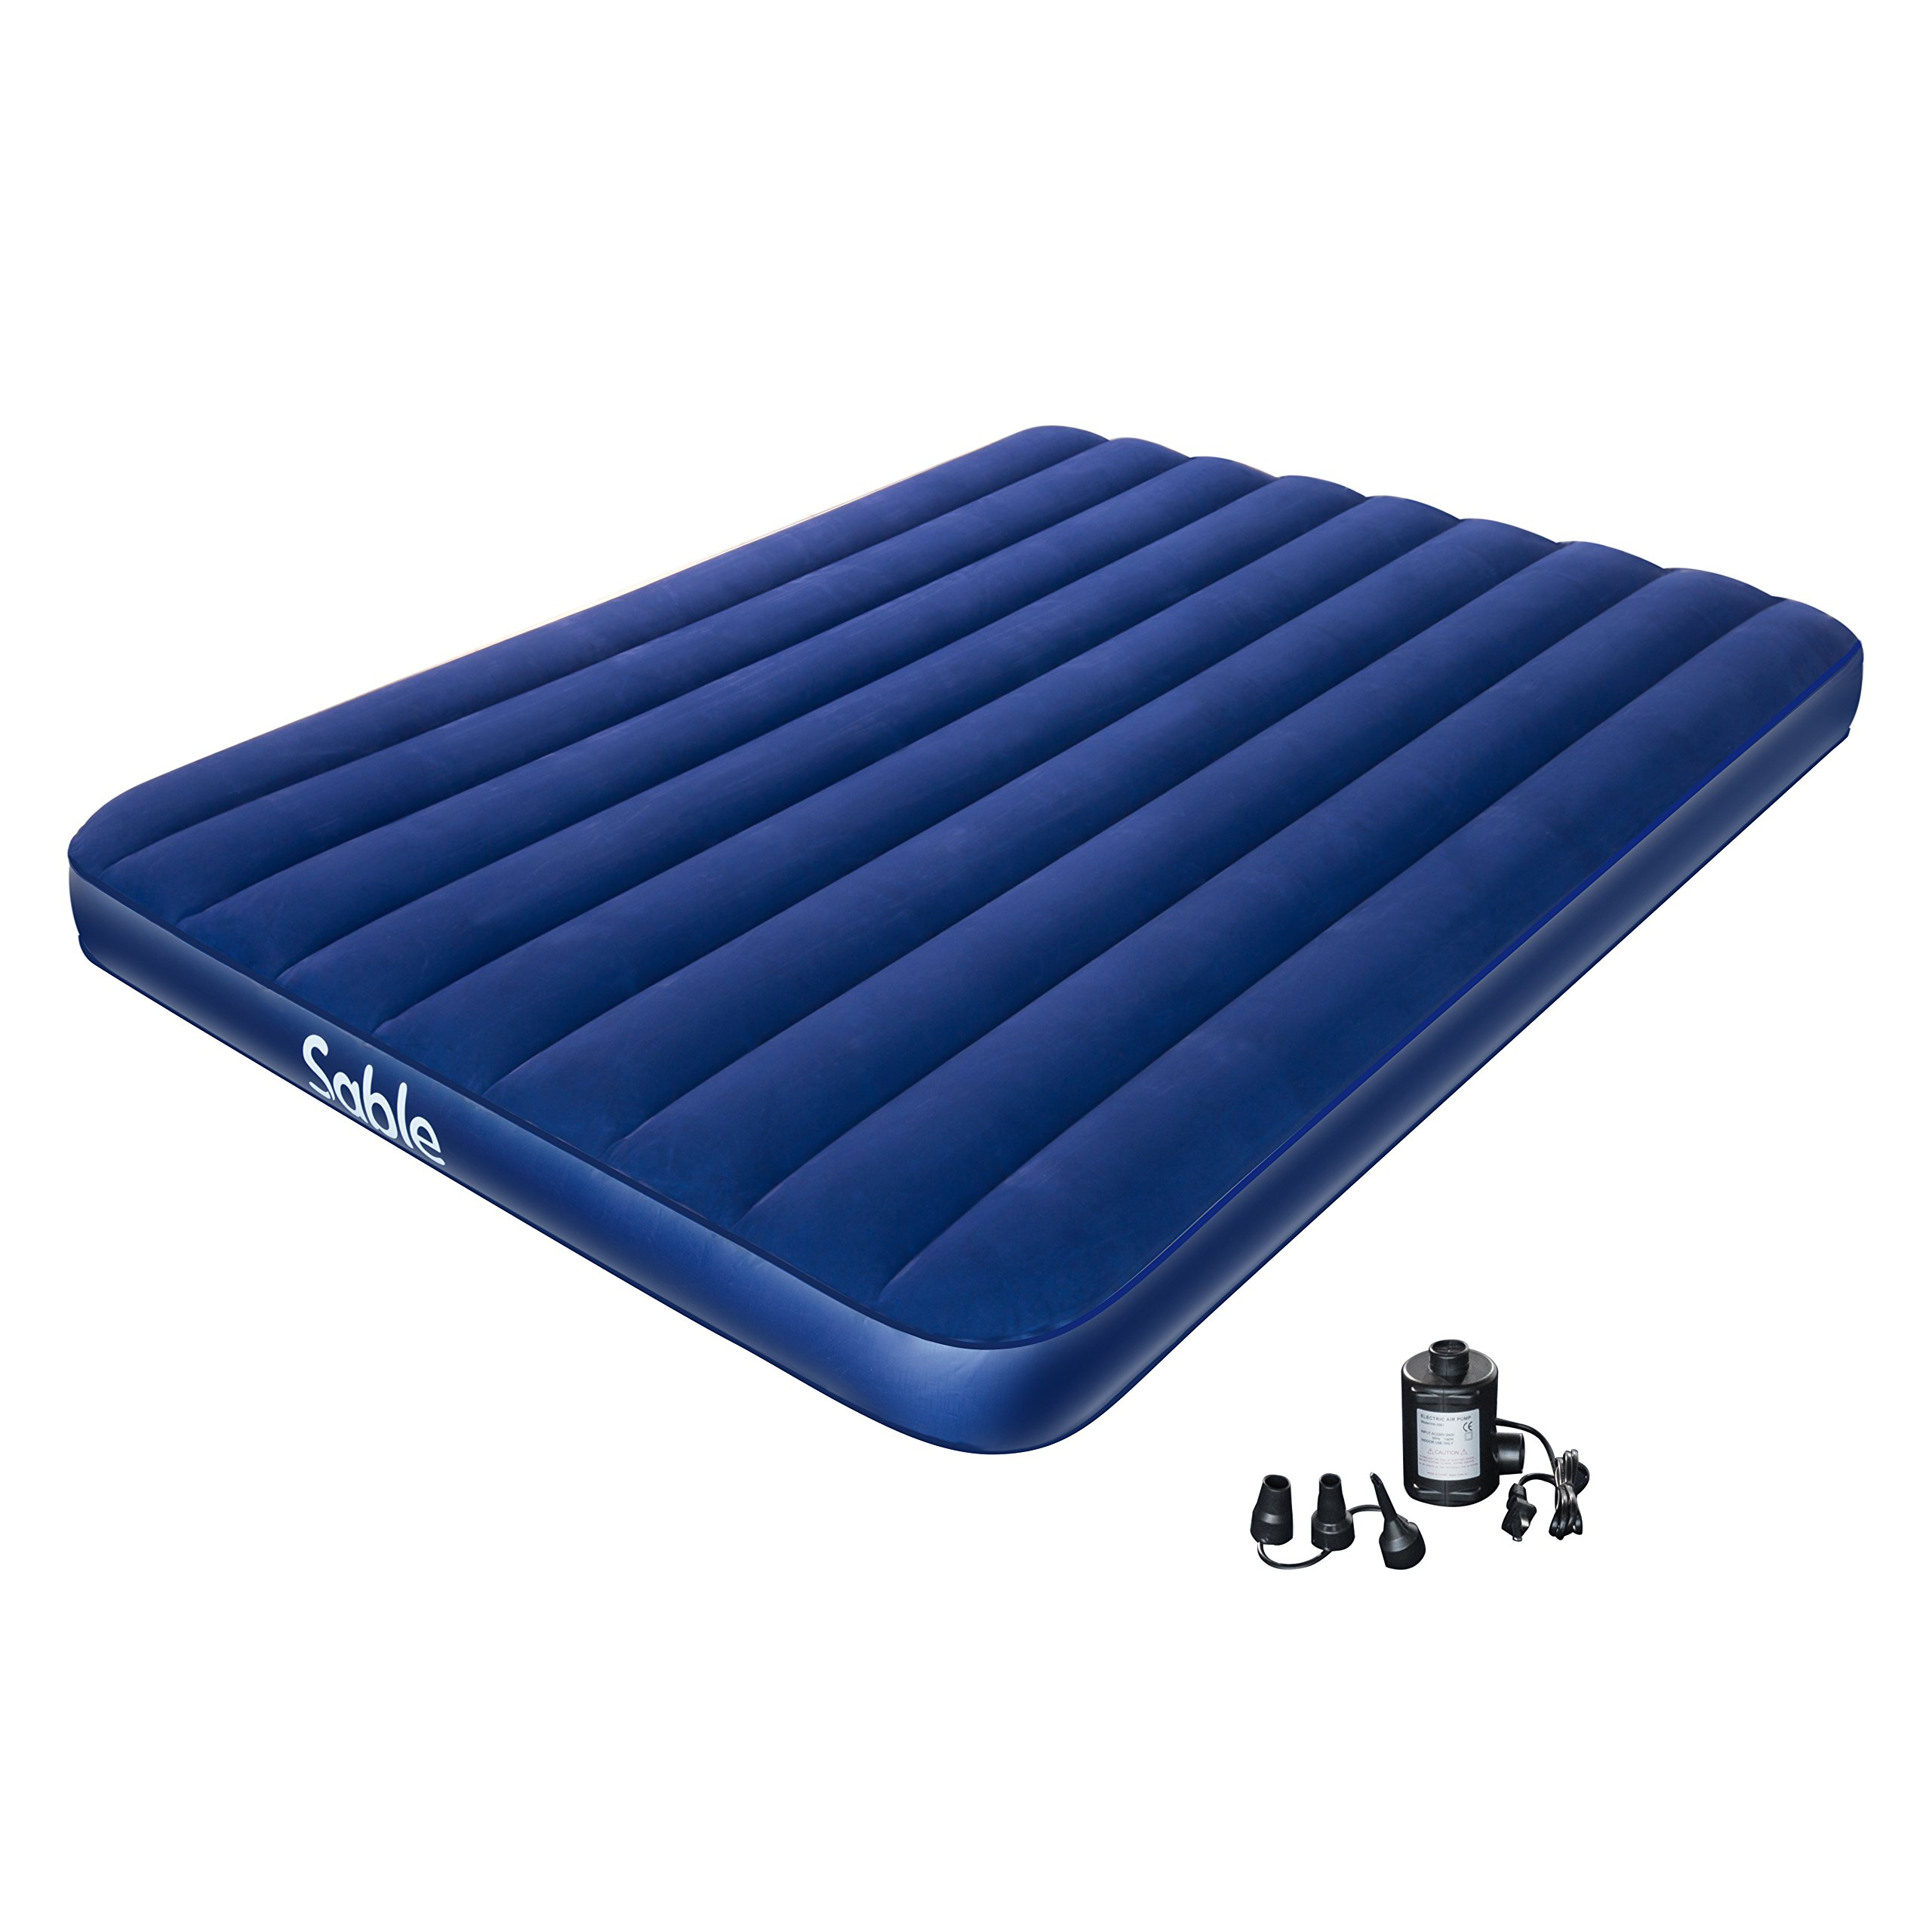 Sable Camping Air Mattress with Electric Air Pump, Upgraded Inflatable Air Bed Blow up Bed for Car Tent Camping Hiking Backpacking, Height 8 inches, Queen Size